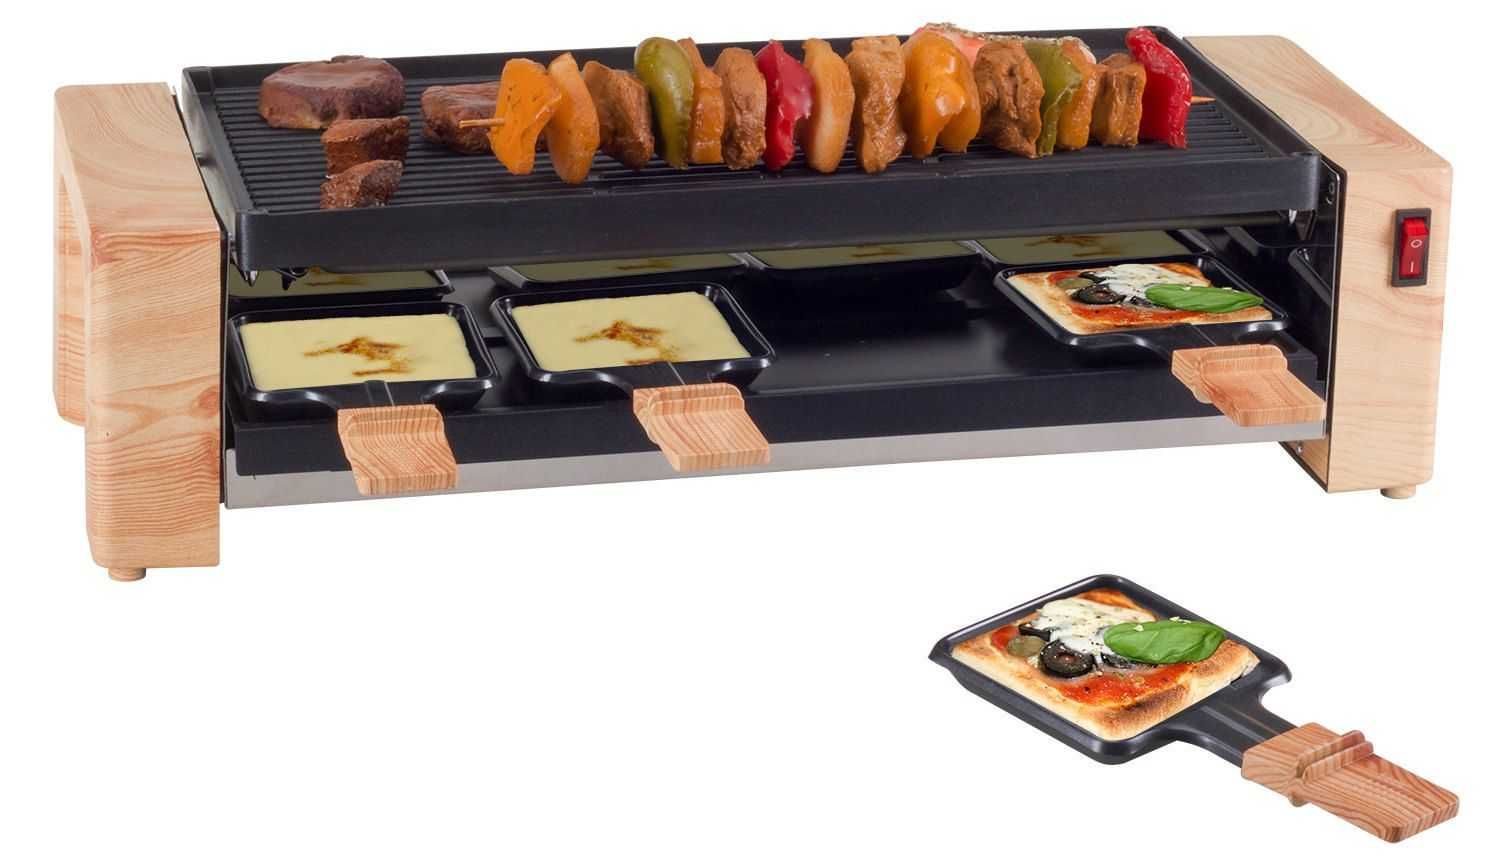 Nouvel Pizza Grill Wood Grill And Pizza 8 Personen Gunstig Kaufen Raclette Grill Nouvel 402320 F Xfc R Holzgrill Raclette Ofen Grillen